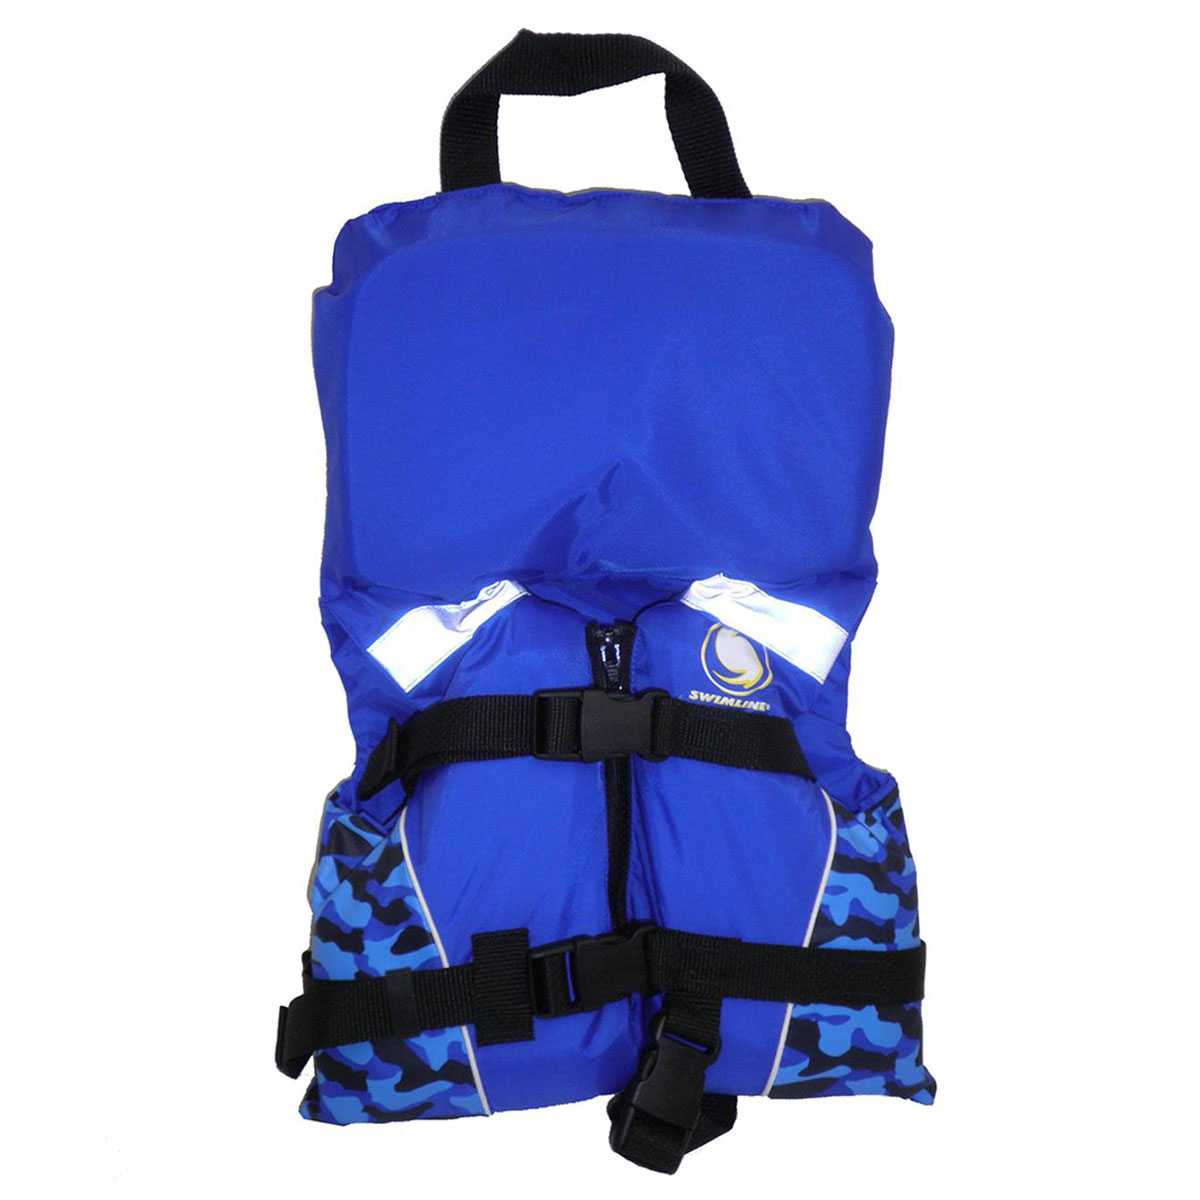 Blue Infant Boy Life Vest USGC Approved Type II For Kids Up to 30 Pounds by